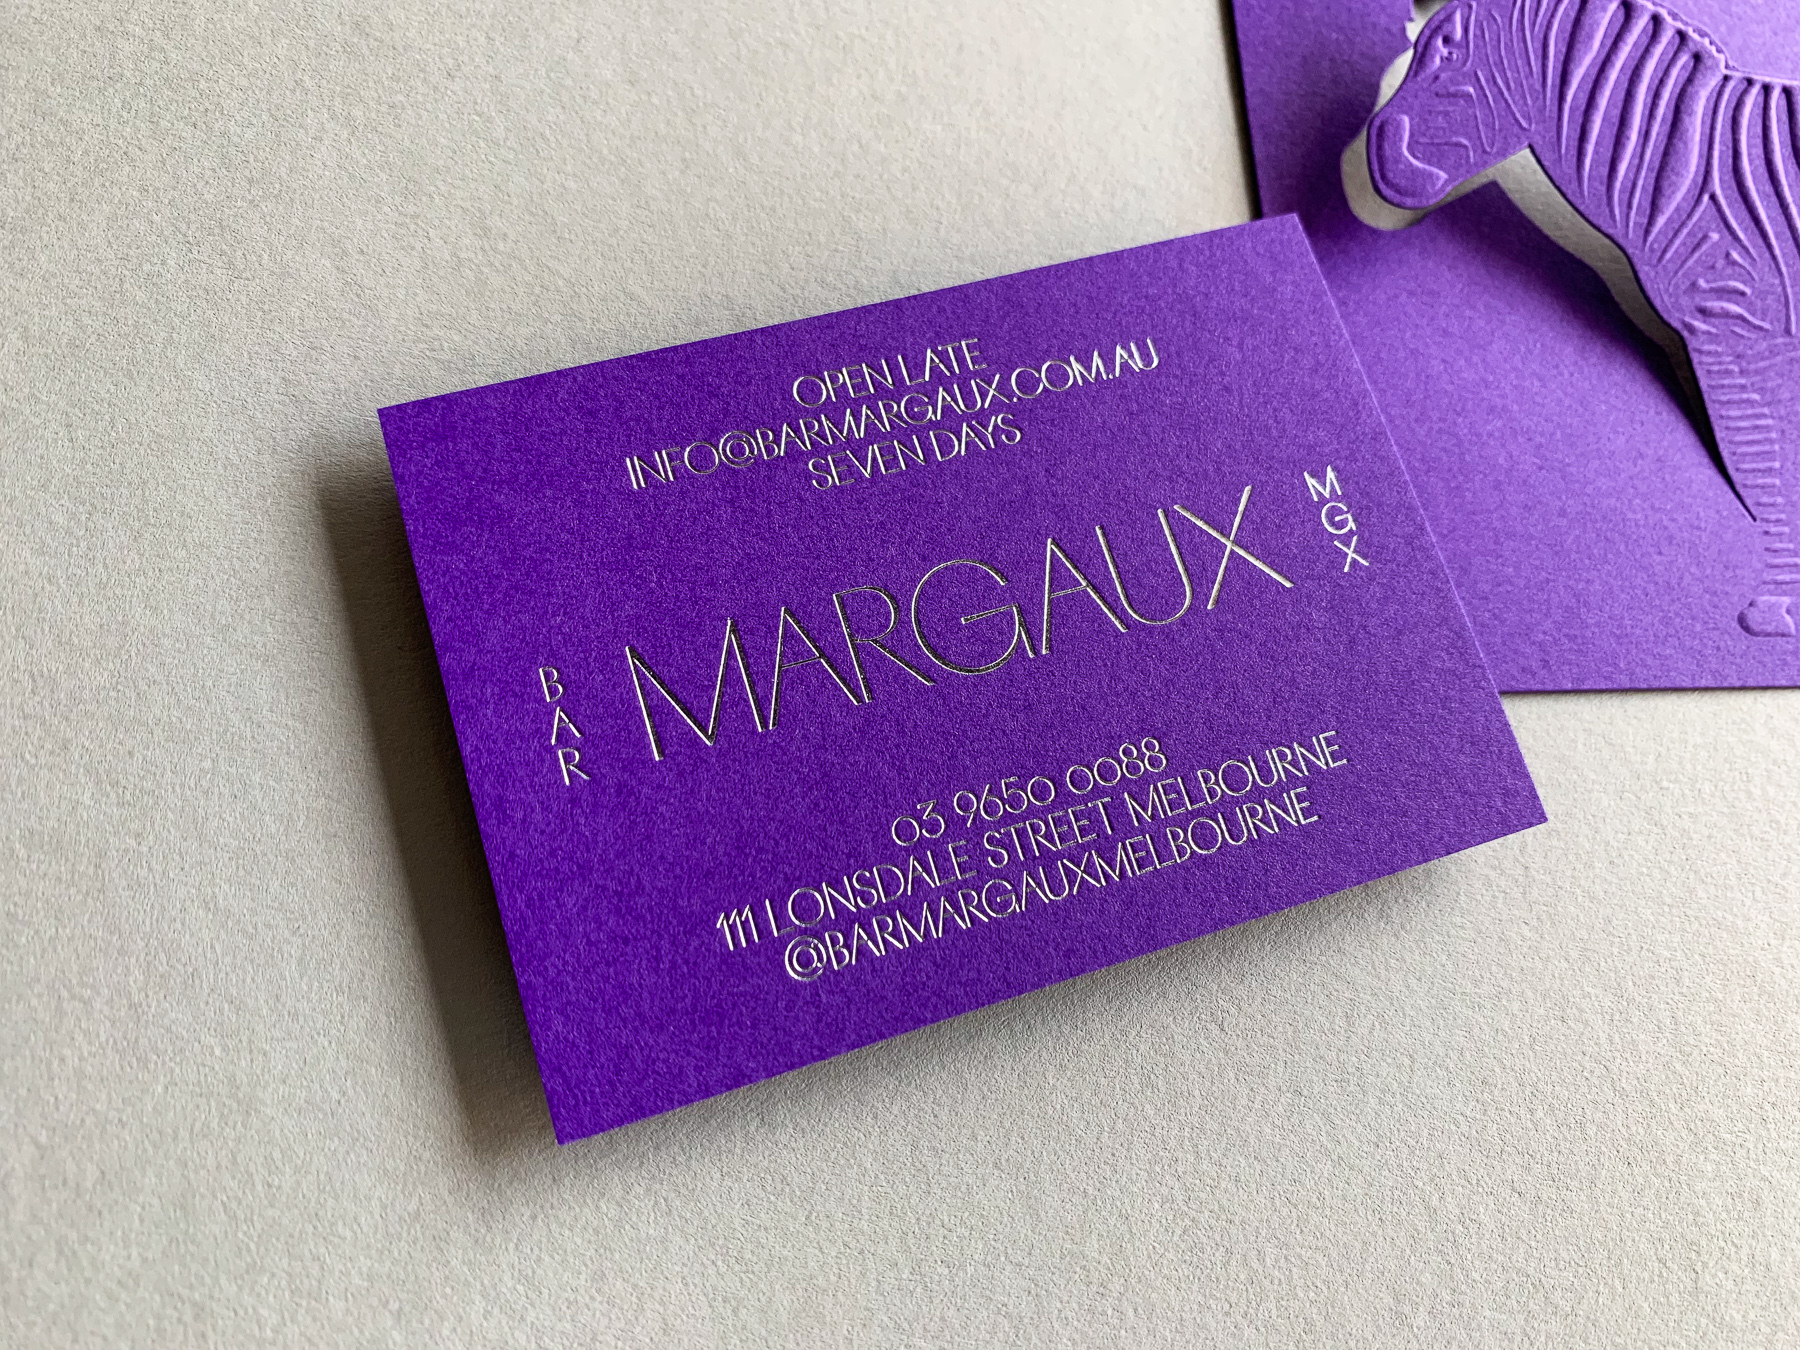 Foil business cards for Bar Margaux on Colorplan Purple 270gsm